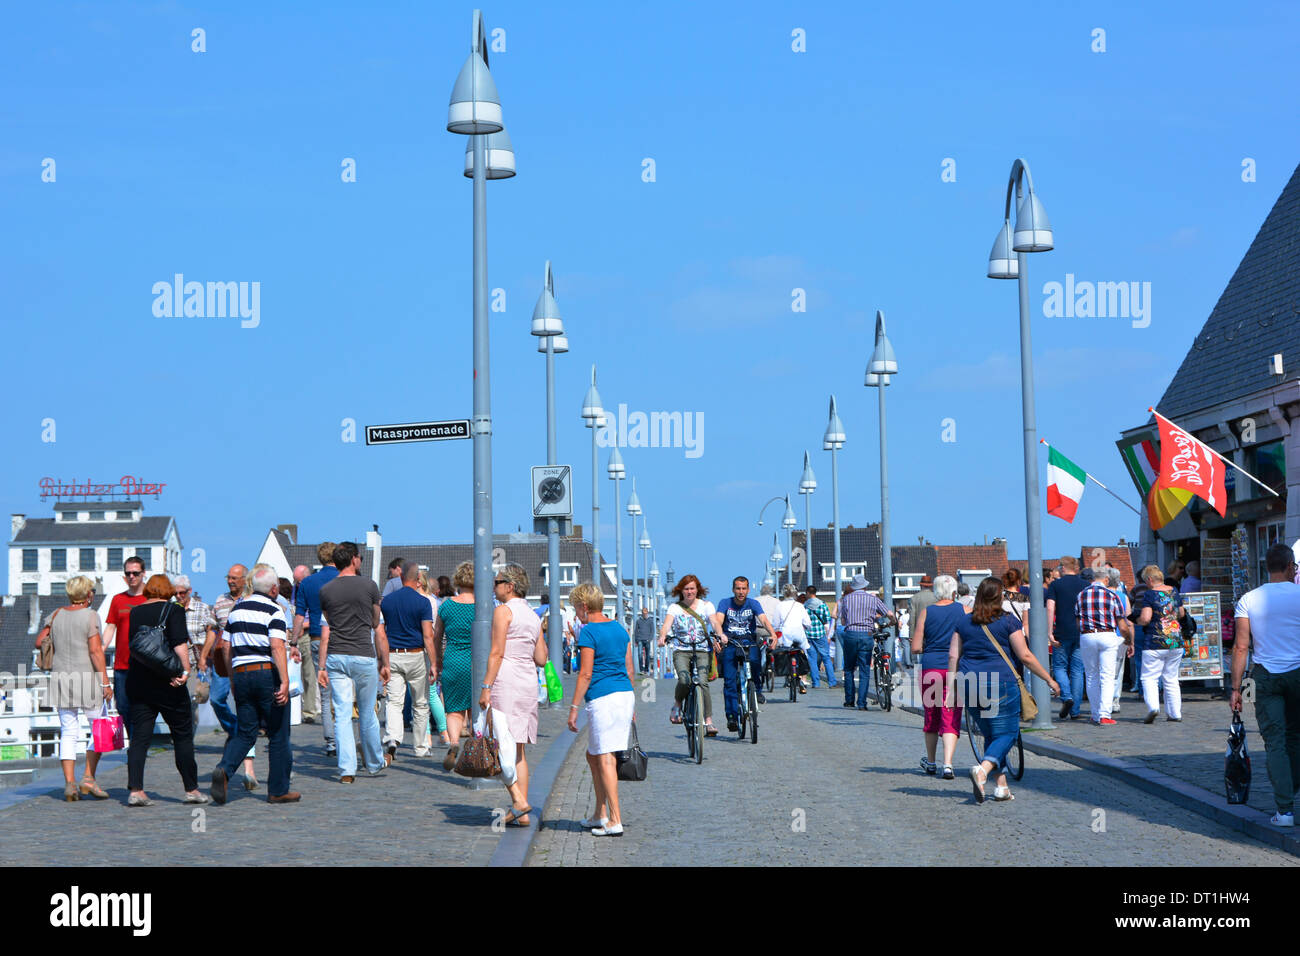 Street scene pedestrians and cyclists on the Saint Servatius (Sint Servaasbrug) bridge over the river Meuse on a hot summer day - Stock Image